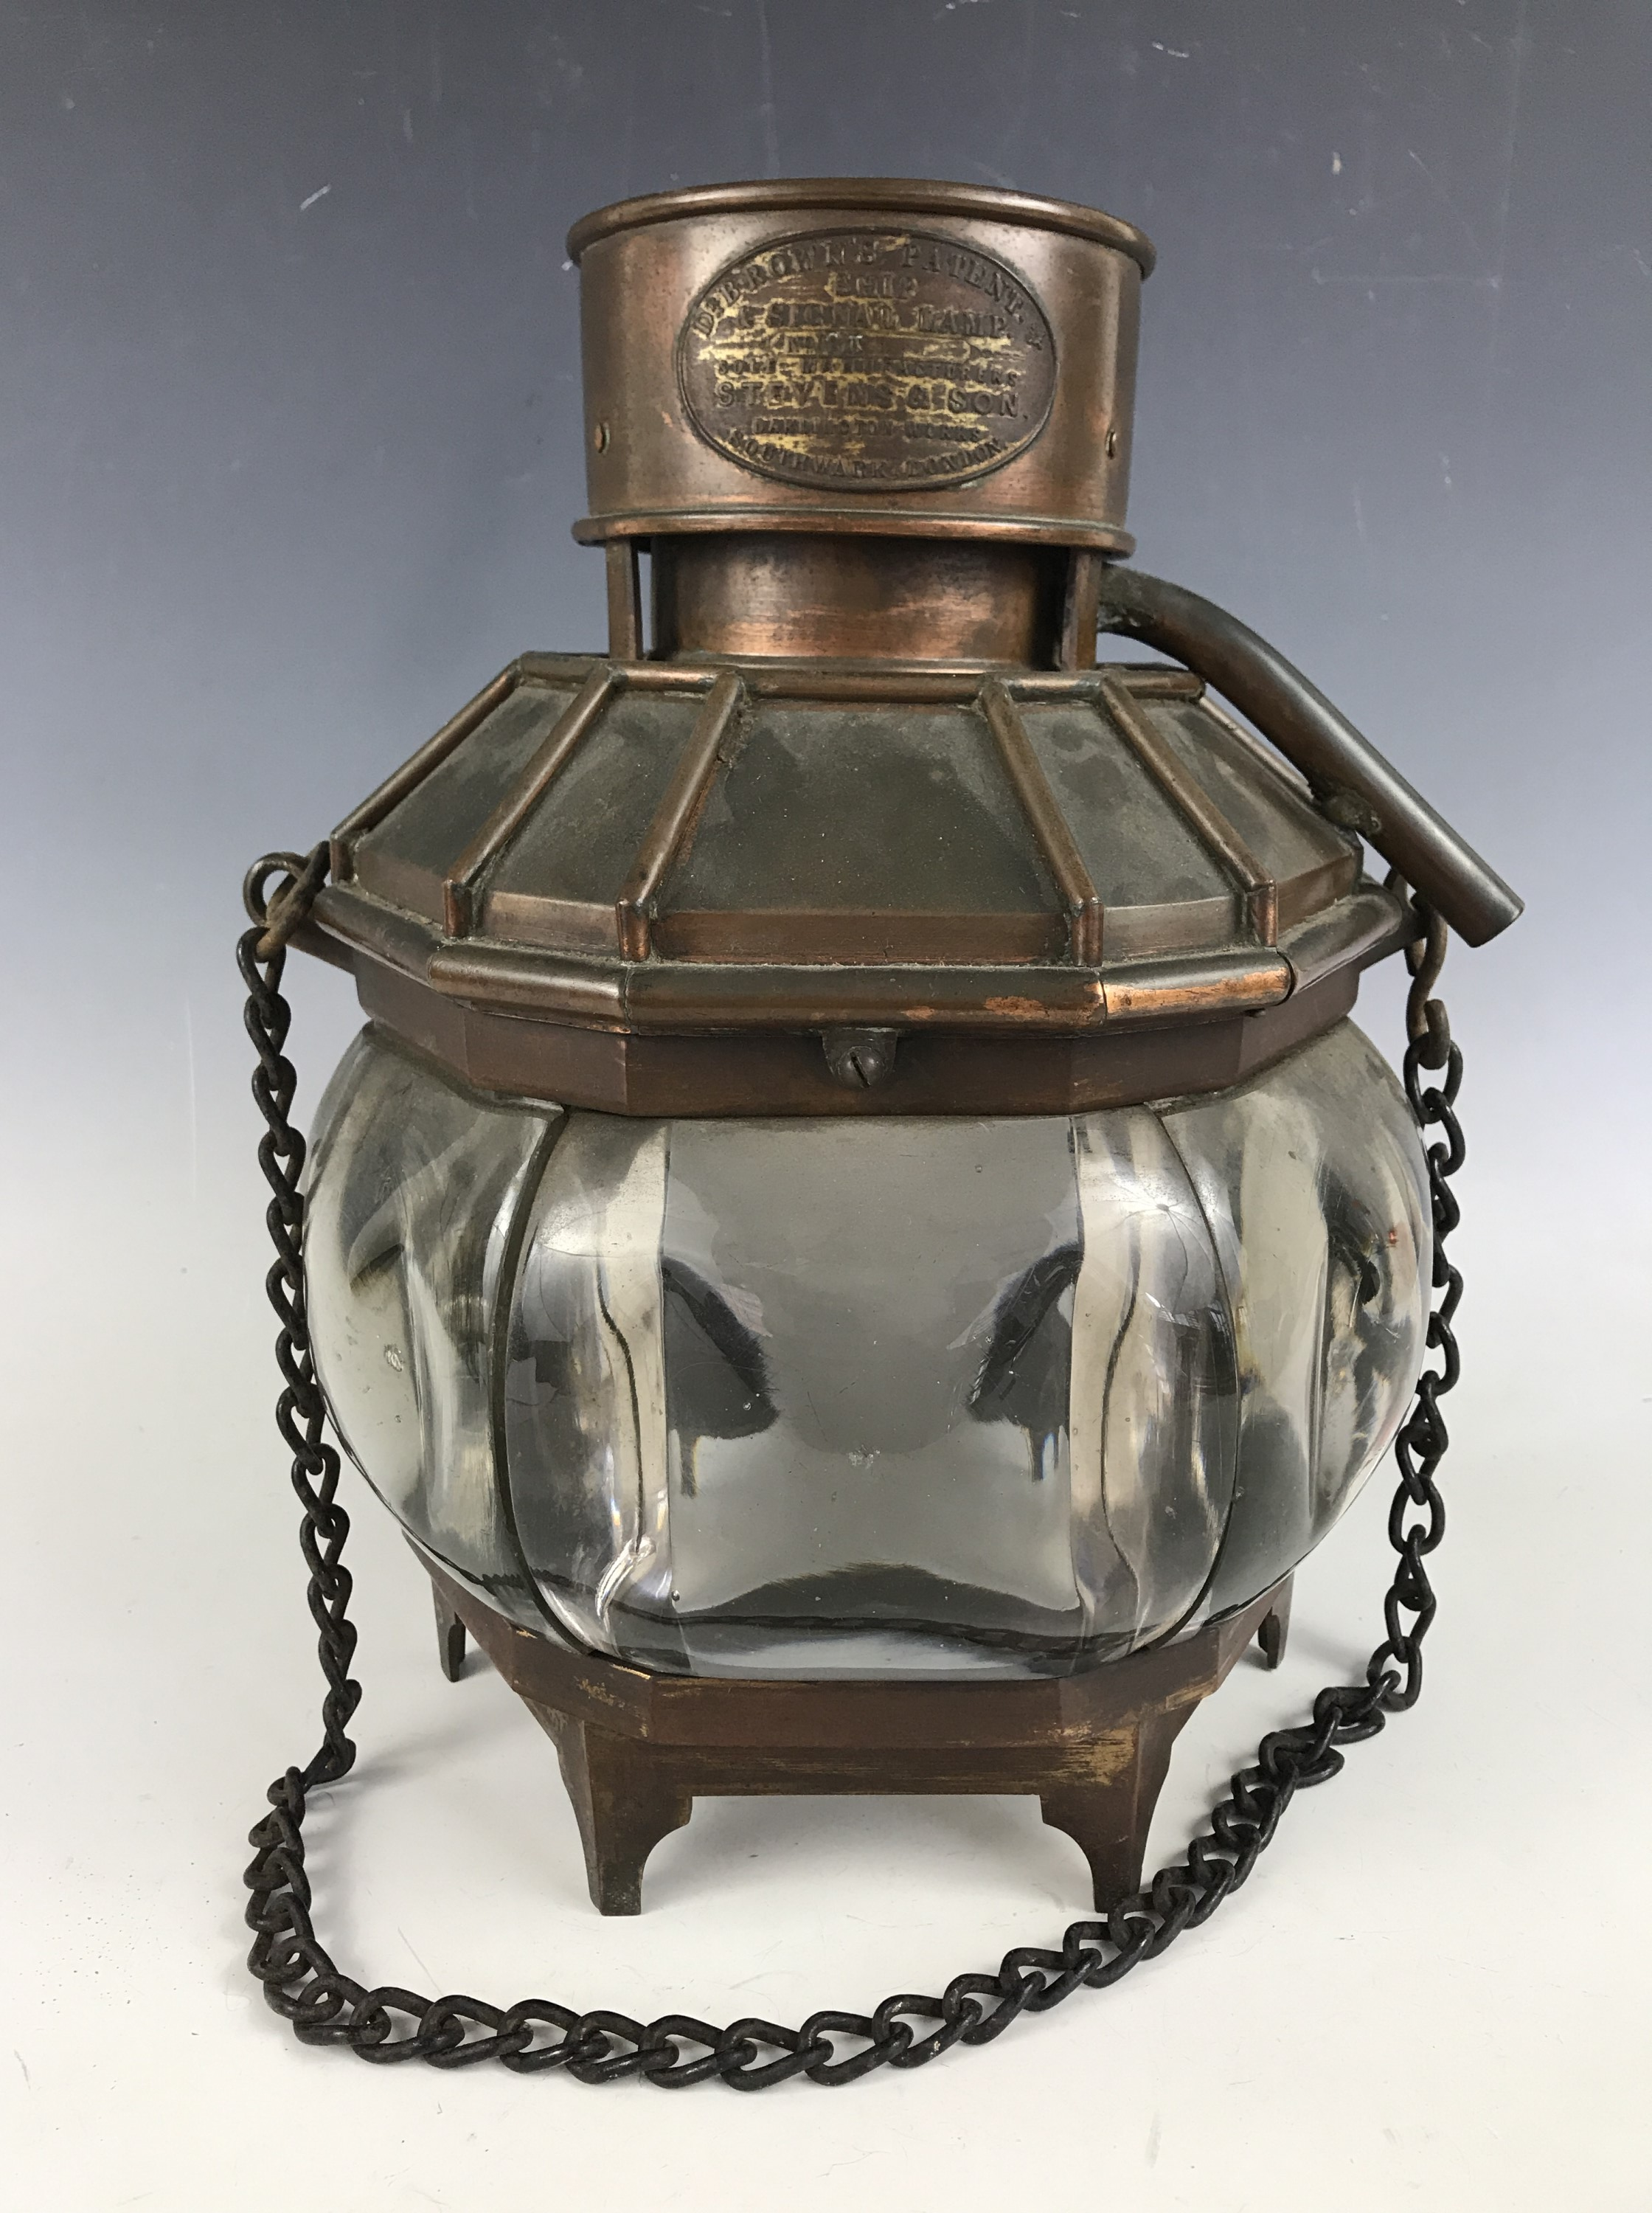 Lot 10 - A Brown's Patent Ship and Signal Lamp, No 6T, manufactured by Stevens & Son, Darlington Works,